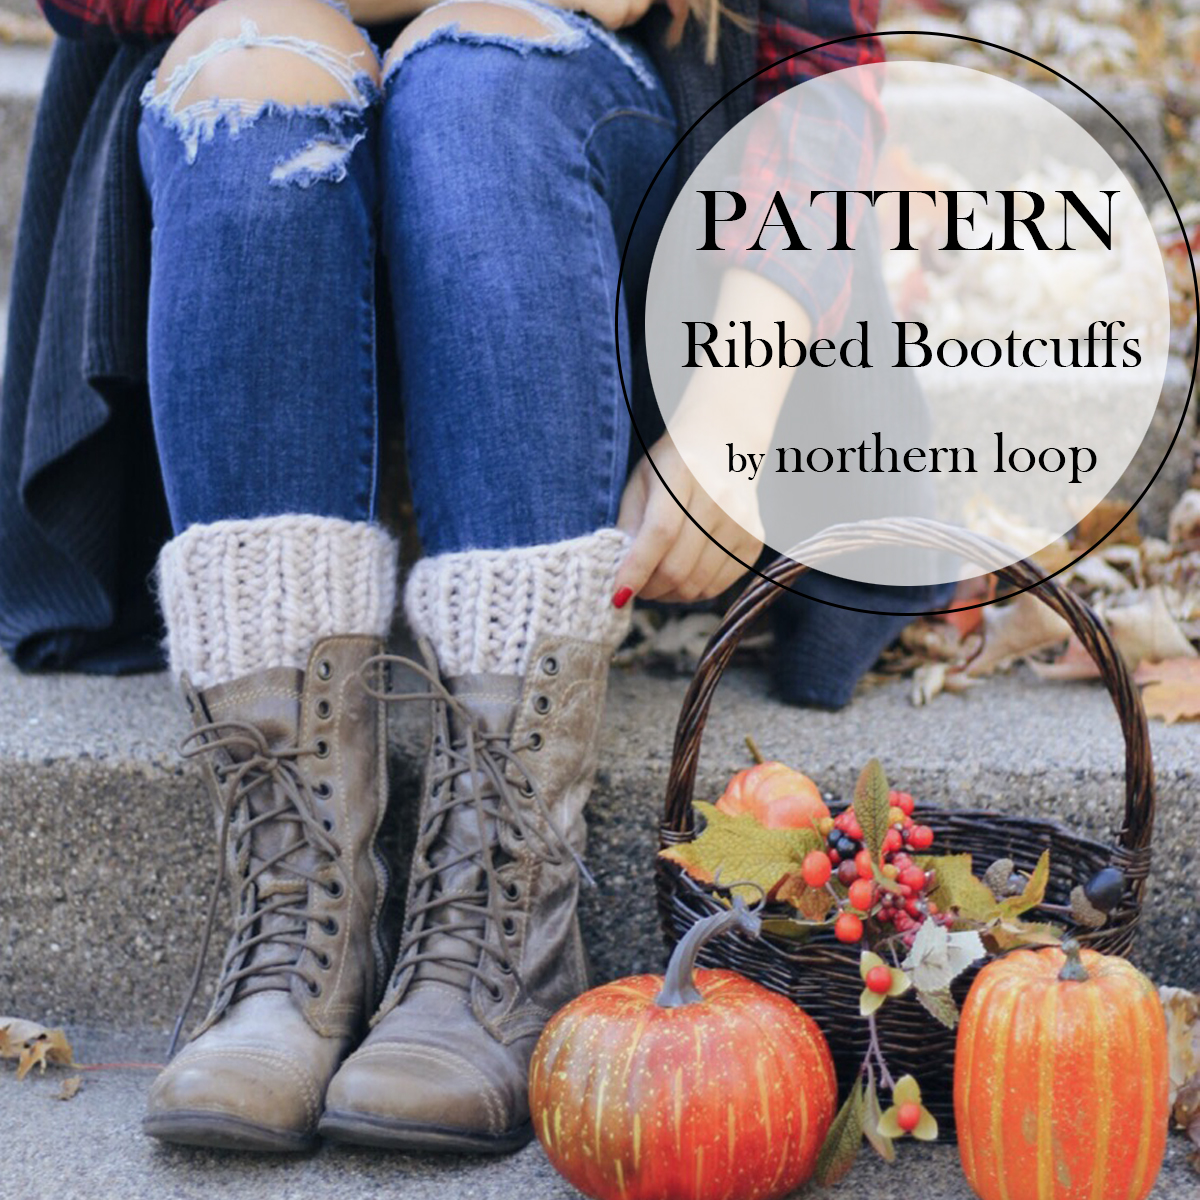 Ribbed Bootcuffs by Northern Loop Knitwear